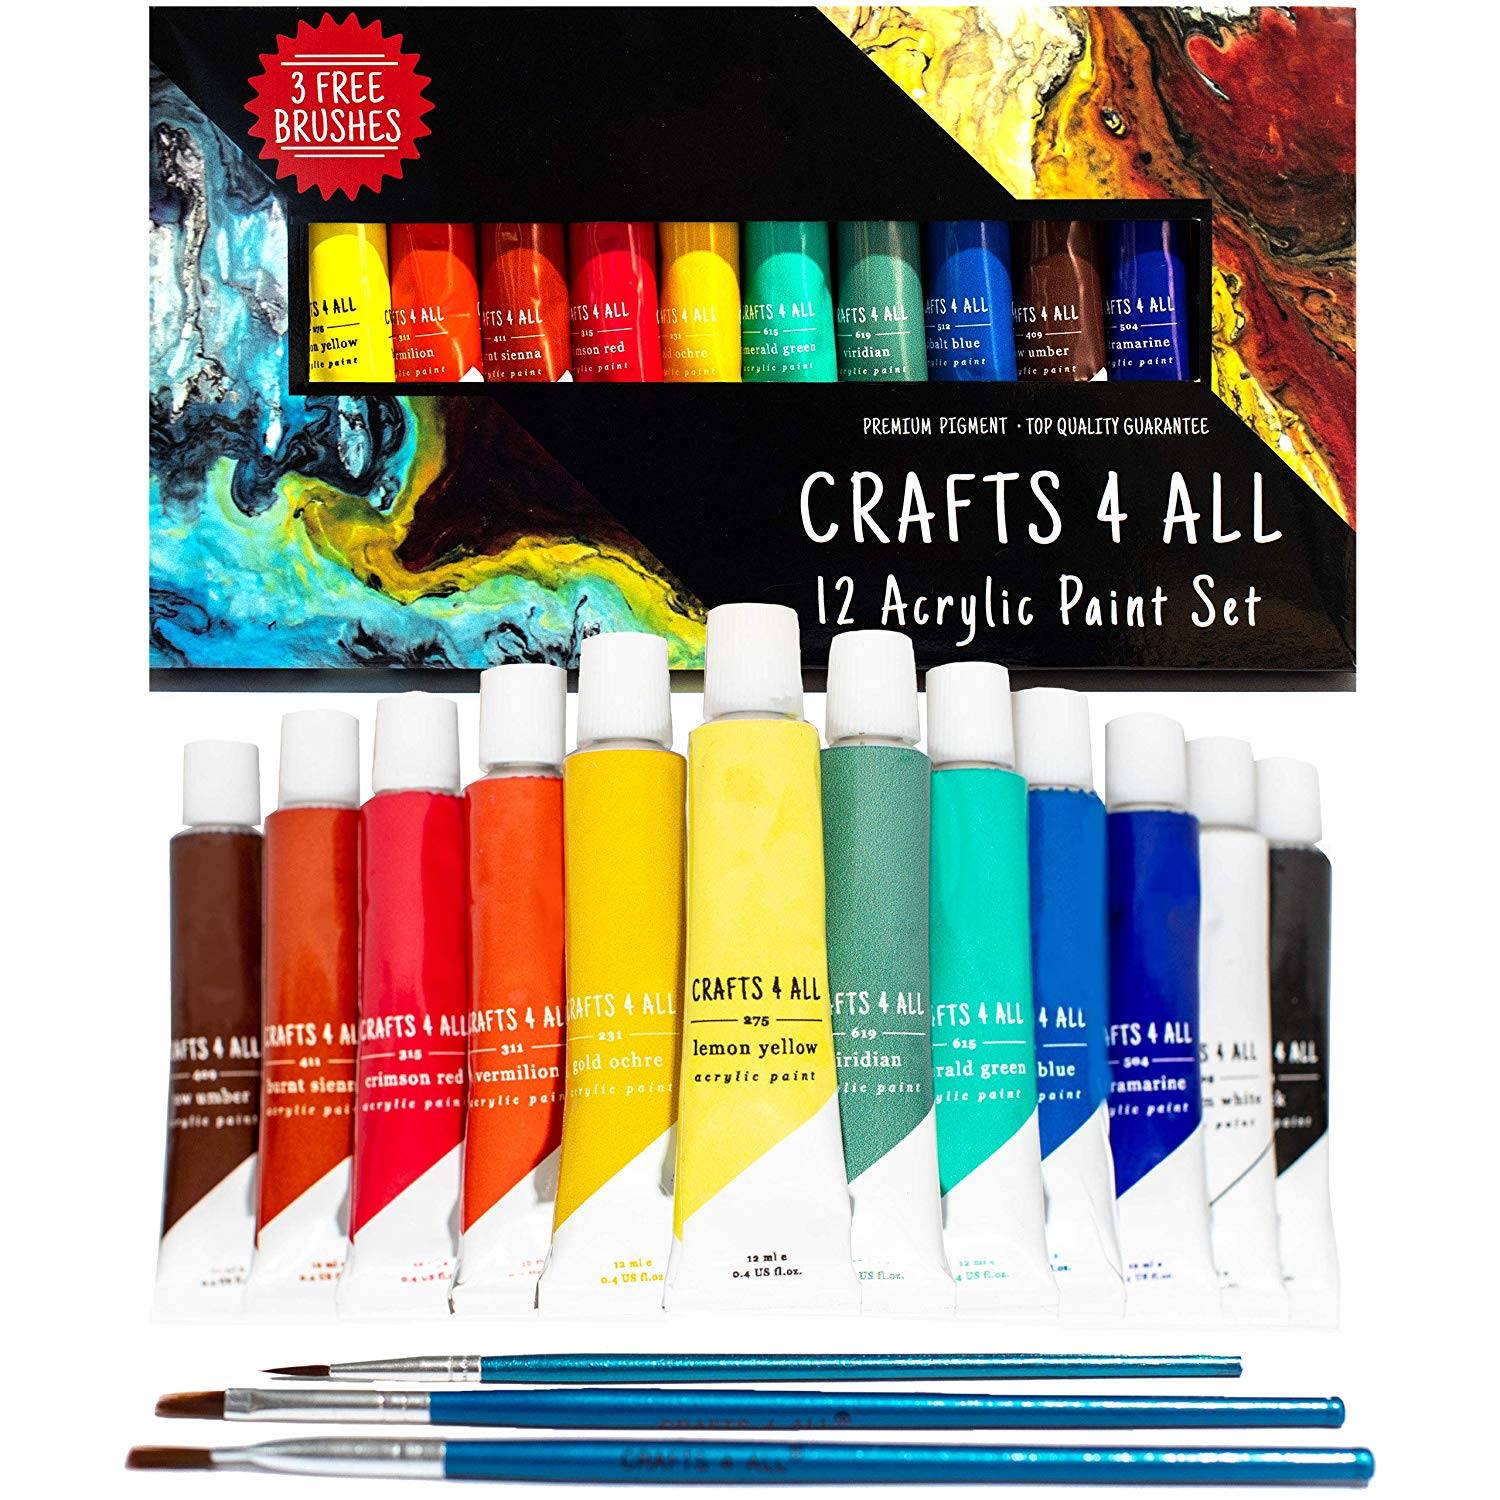 Crafts 4 All 12 count acrylic paint